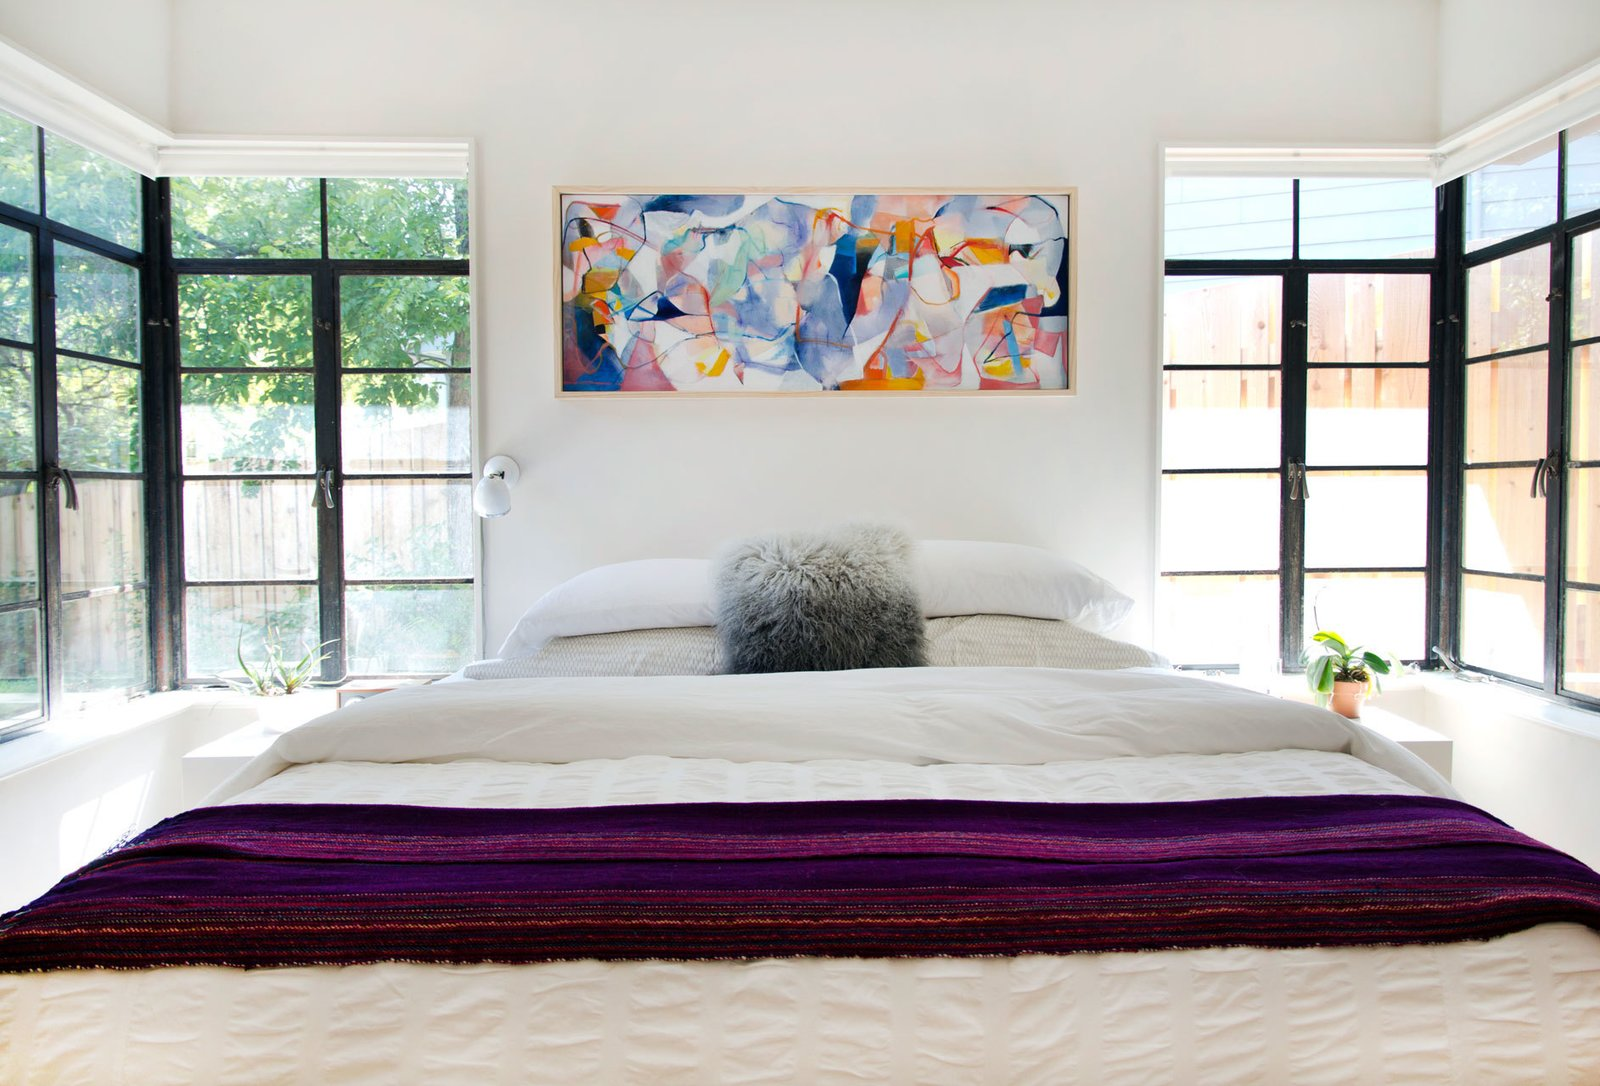 "The bedroom enjoys ample natural light, thanks to the windows on either side of the Charles Rogers bed. ""We centered all our bedroom doors around the central hallway skylight,"" says Allison. The painting is by Pat Diaz."